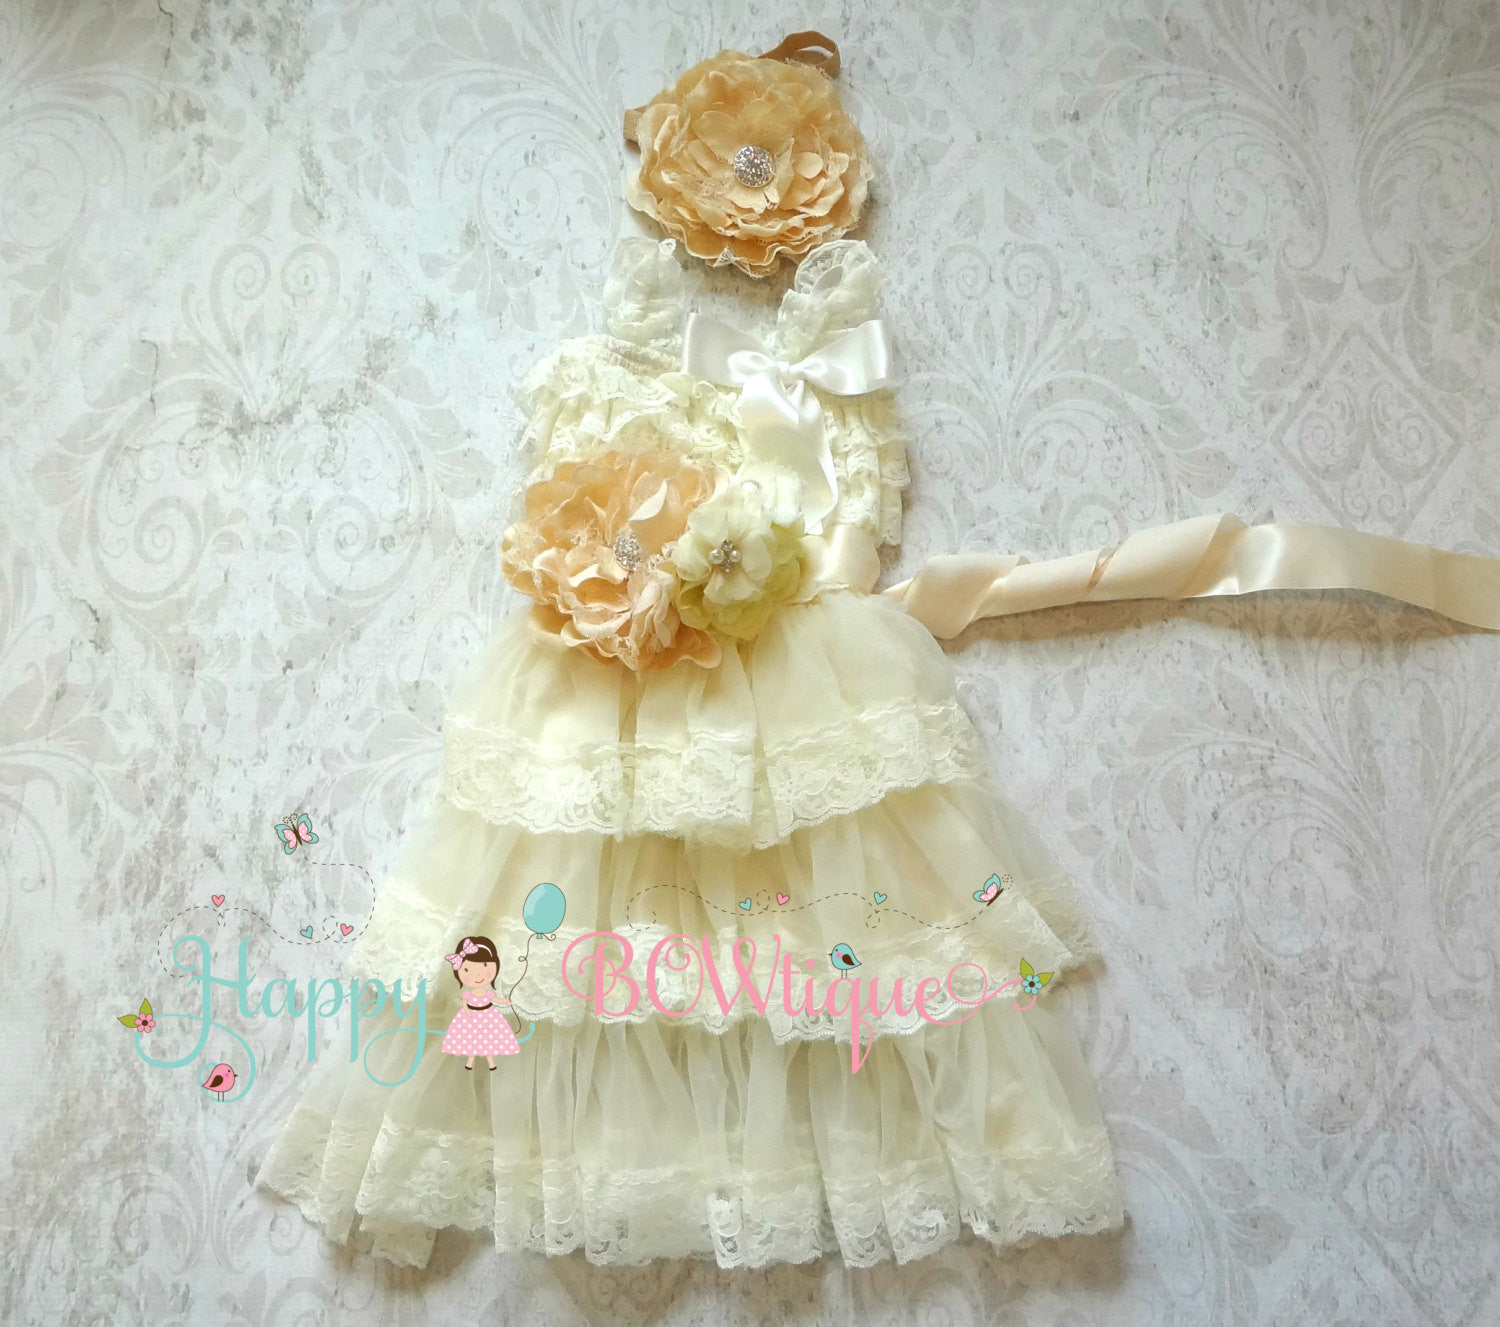 Wedding Bridal Rustic Flower Sash/ Ivory Champagne Flower Sash - Happy BOWtique - children's clothing, Baby Girl clothing